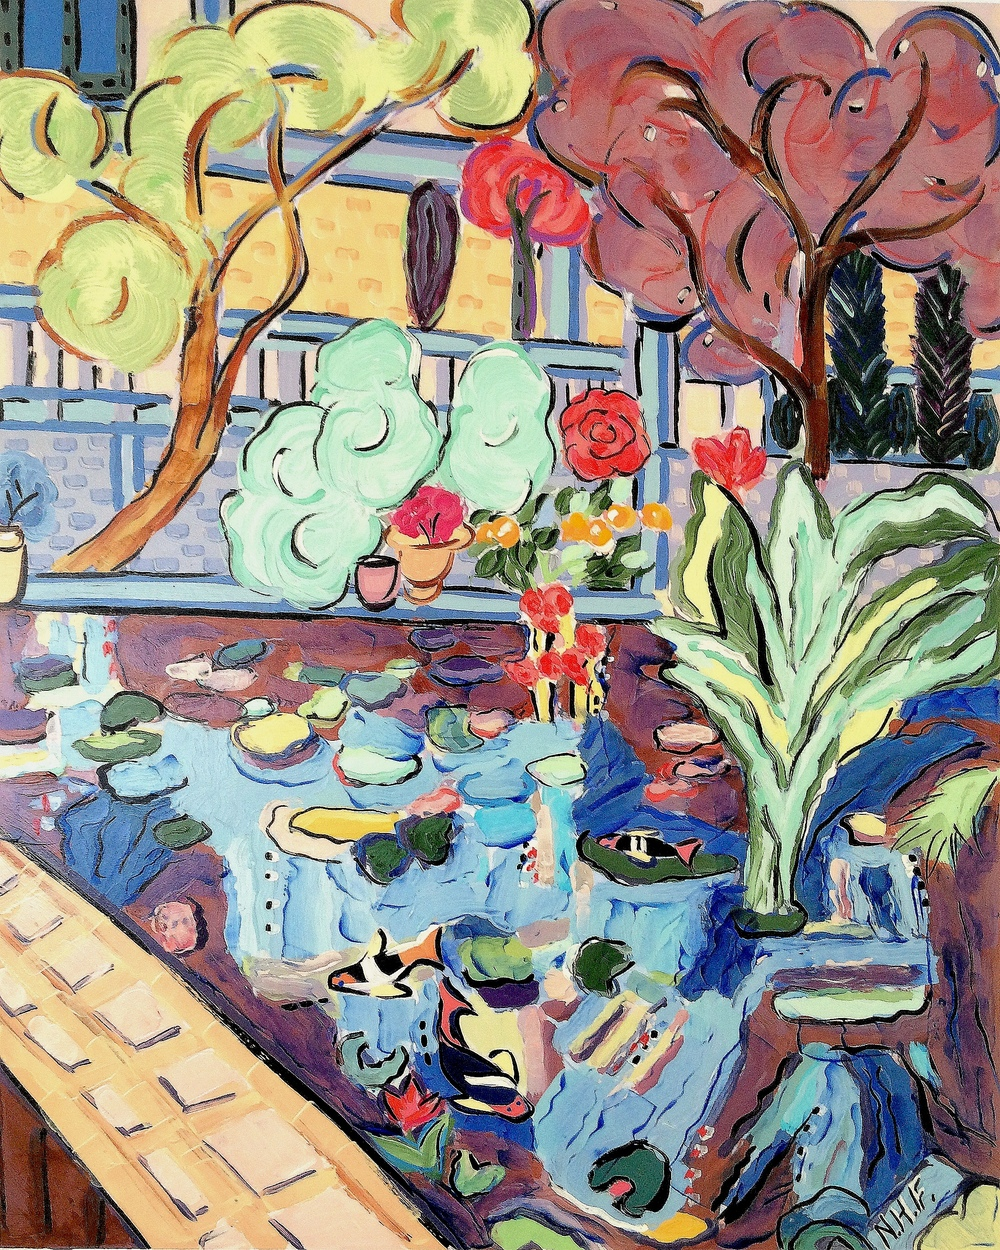 At the Border of the Lily Pond 2 , acrylic on mounted board, 18x15, 22x20 matted, $775